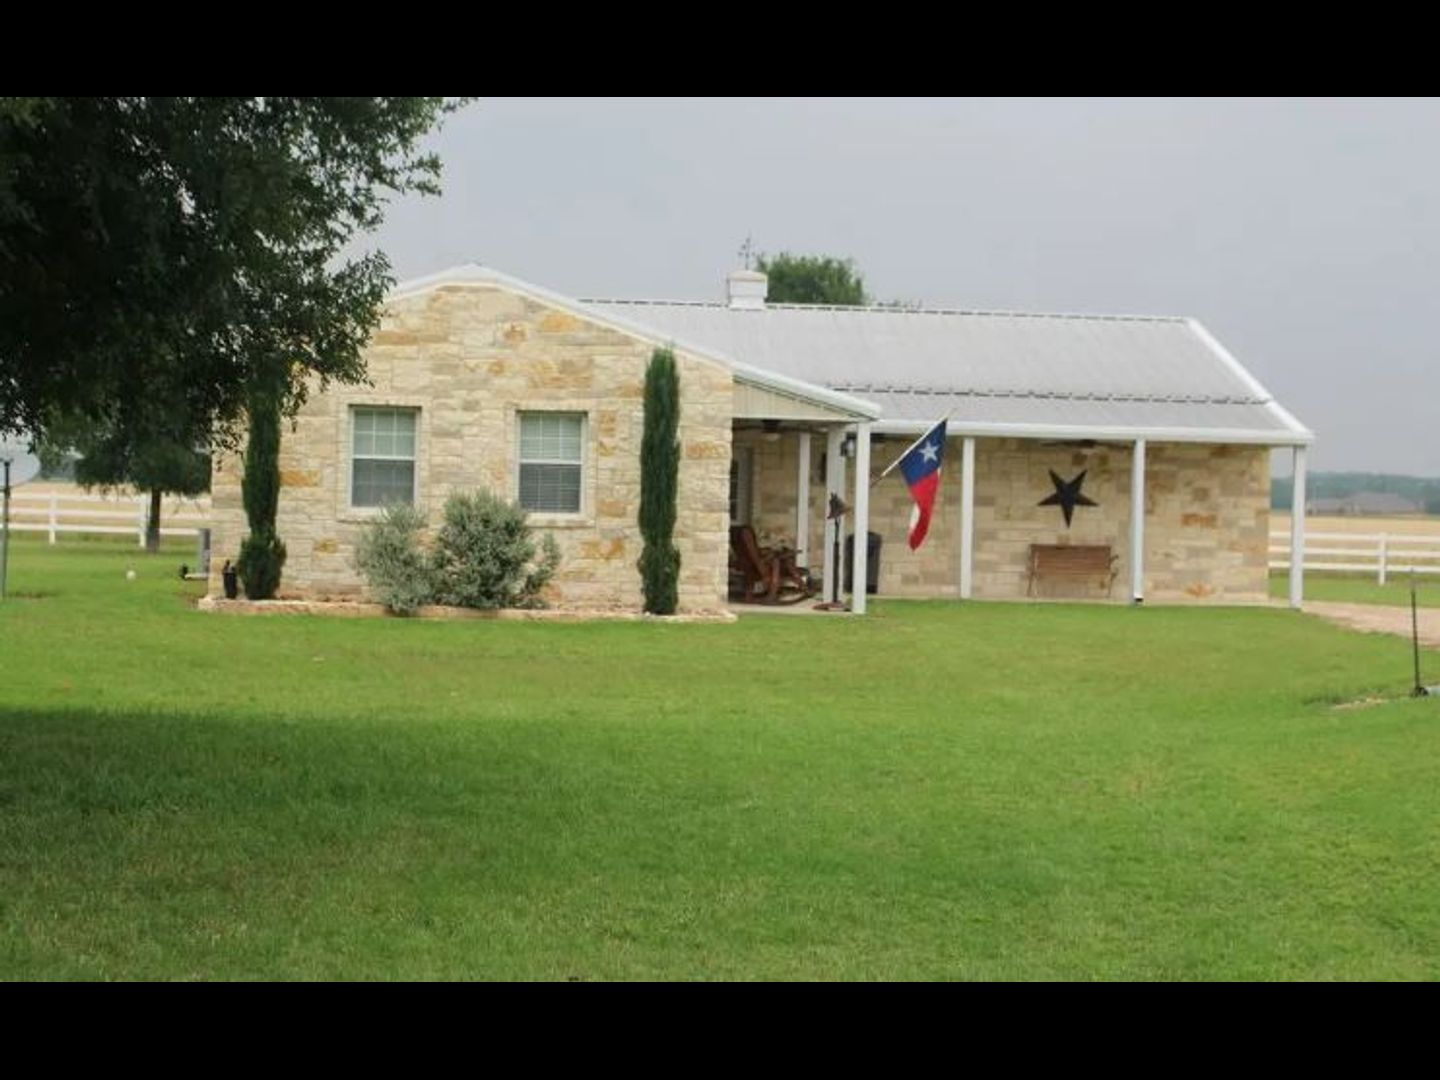 A house with a grass field at Texas Star Bed & Breakfast.